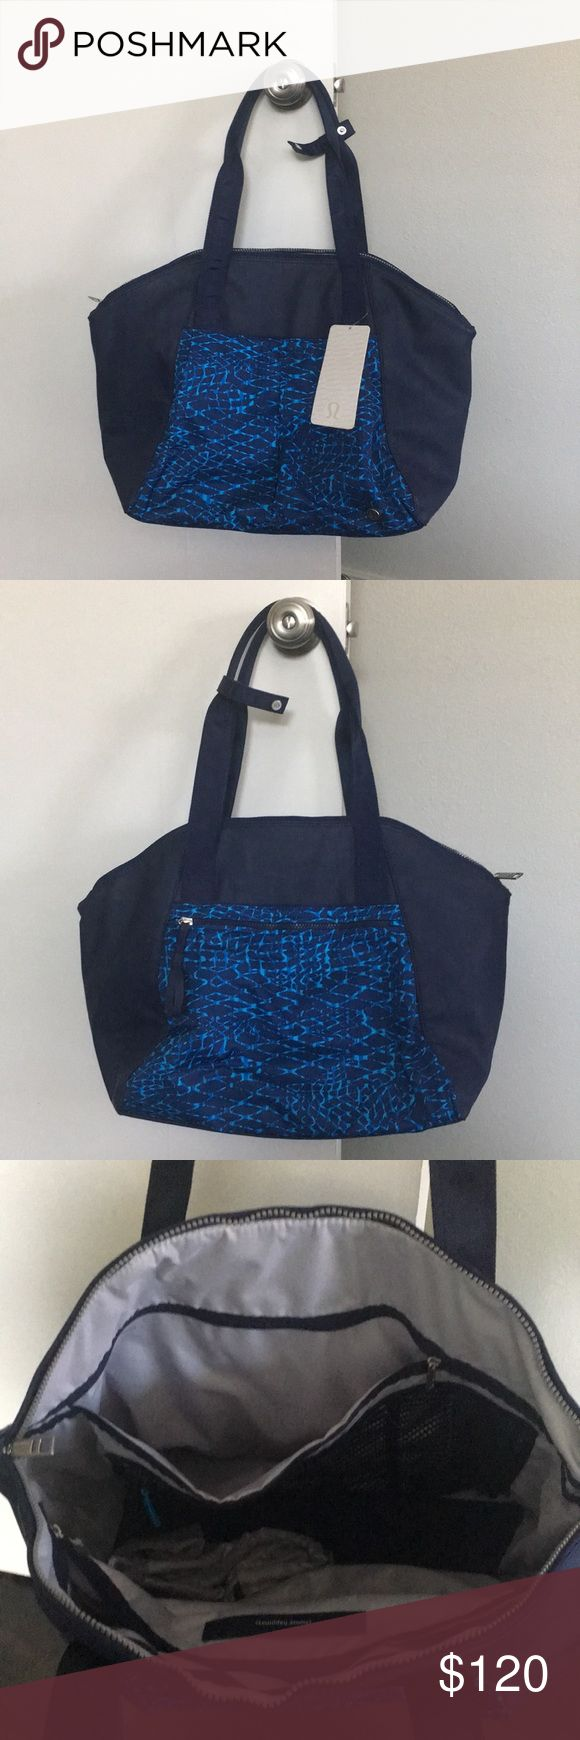 Lululemon Free to Be Bag NWT This is a BEAUTIFUL Lululemon Bag, name of it is FREE TO BE BAG. New, never used, still has the silica pads inside and the removable shoe bag attached (see pics). It's an awesome bag!!!! My hubby got it for me for Christmas as a diaper bag, but I already got one that is specifically a diaper bag. He got it a little while ago at the Lulu store, discounted to $120, so we are selling it discounted as well. Let me know if you have any questions! lululemon athletica…